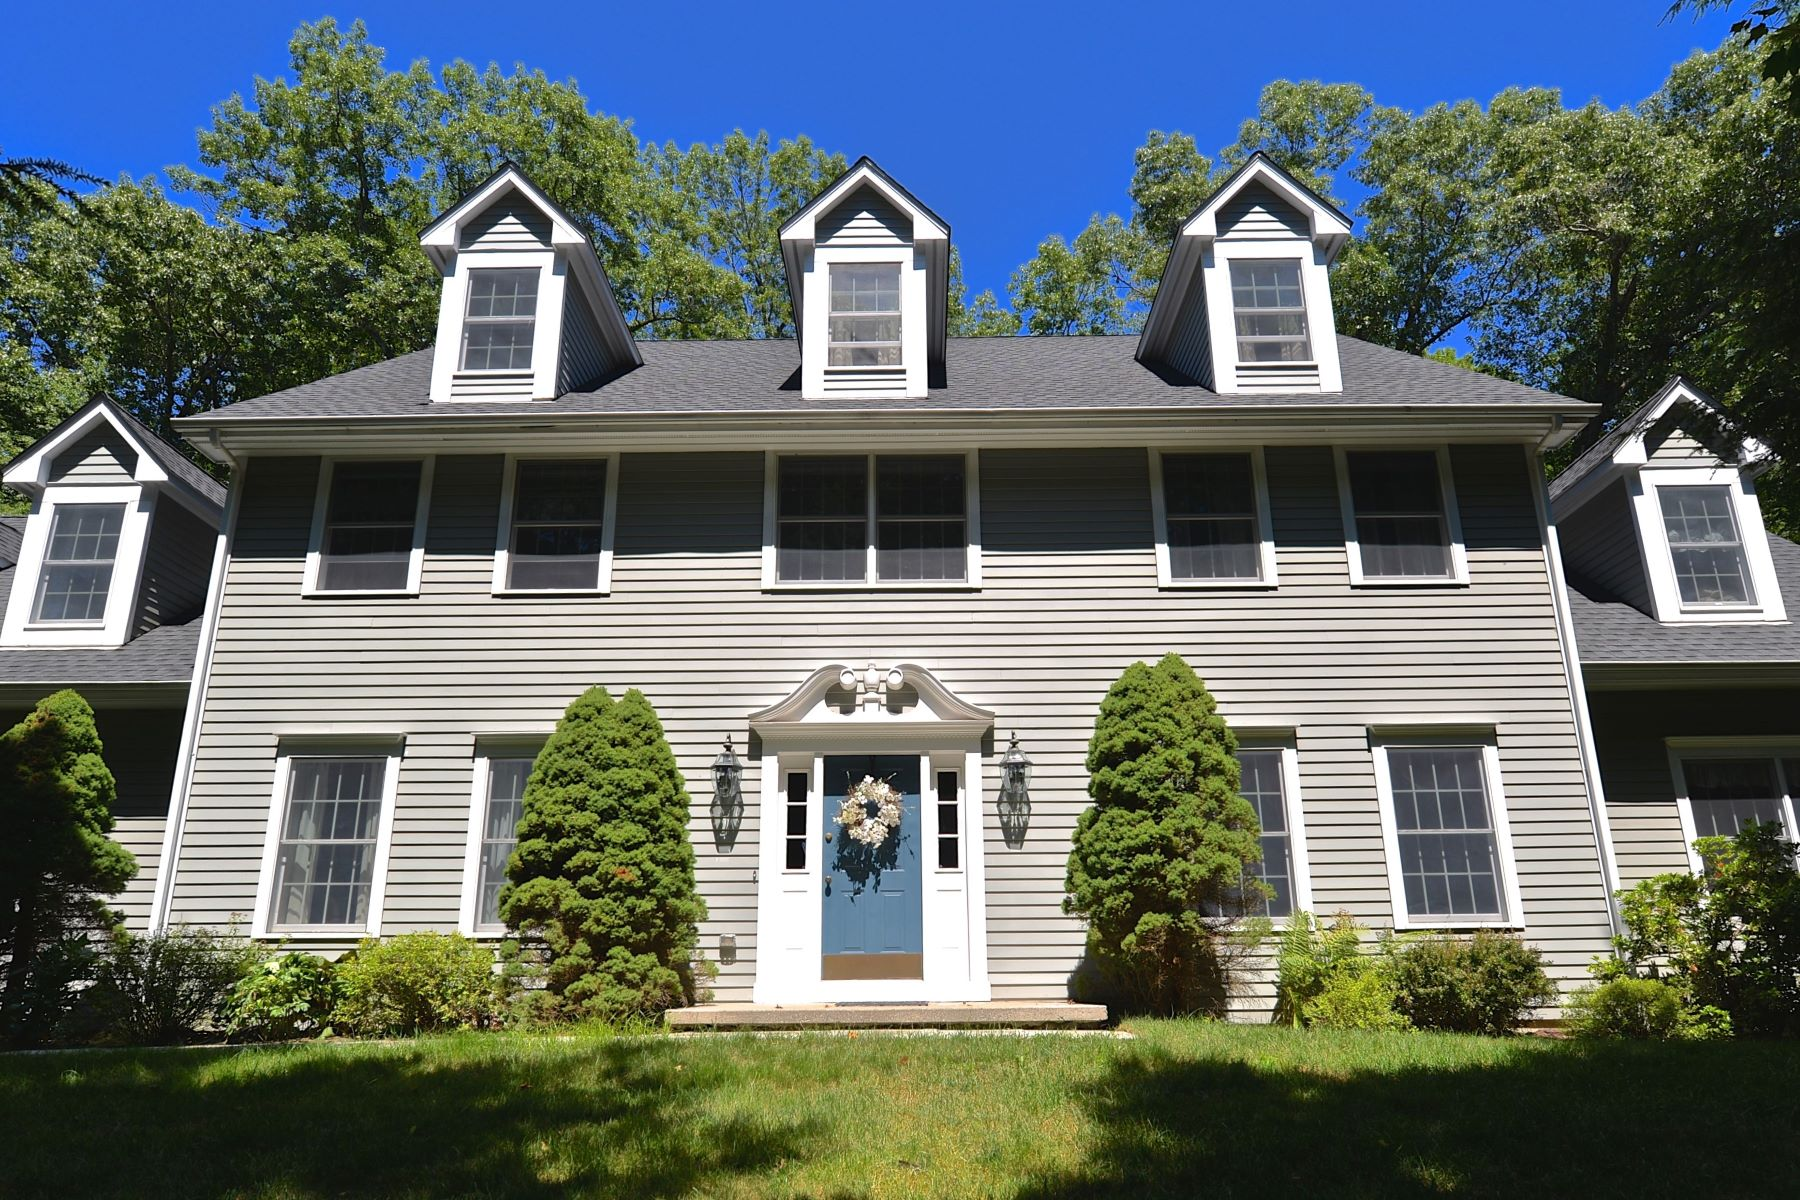 Single Family Home for Sale at Beautifully Sited On A Cul-De-Sac 23 Deerfield Road Brookfield, Connecticut 06804 United States